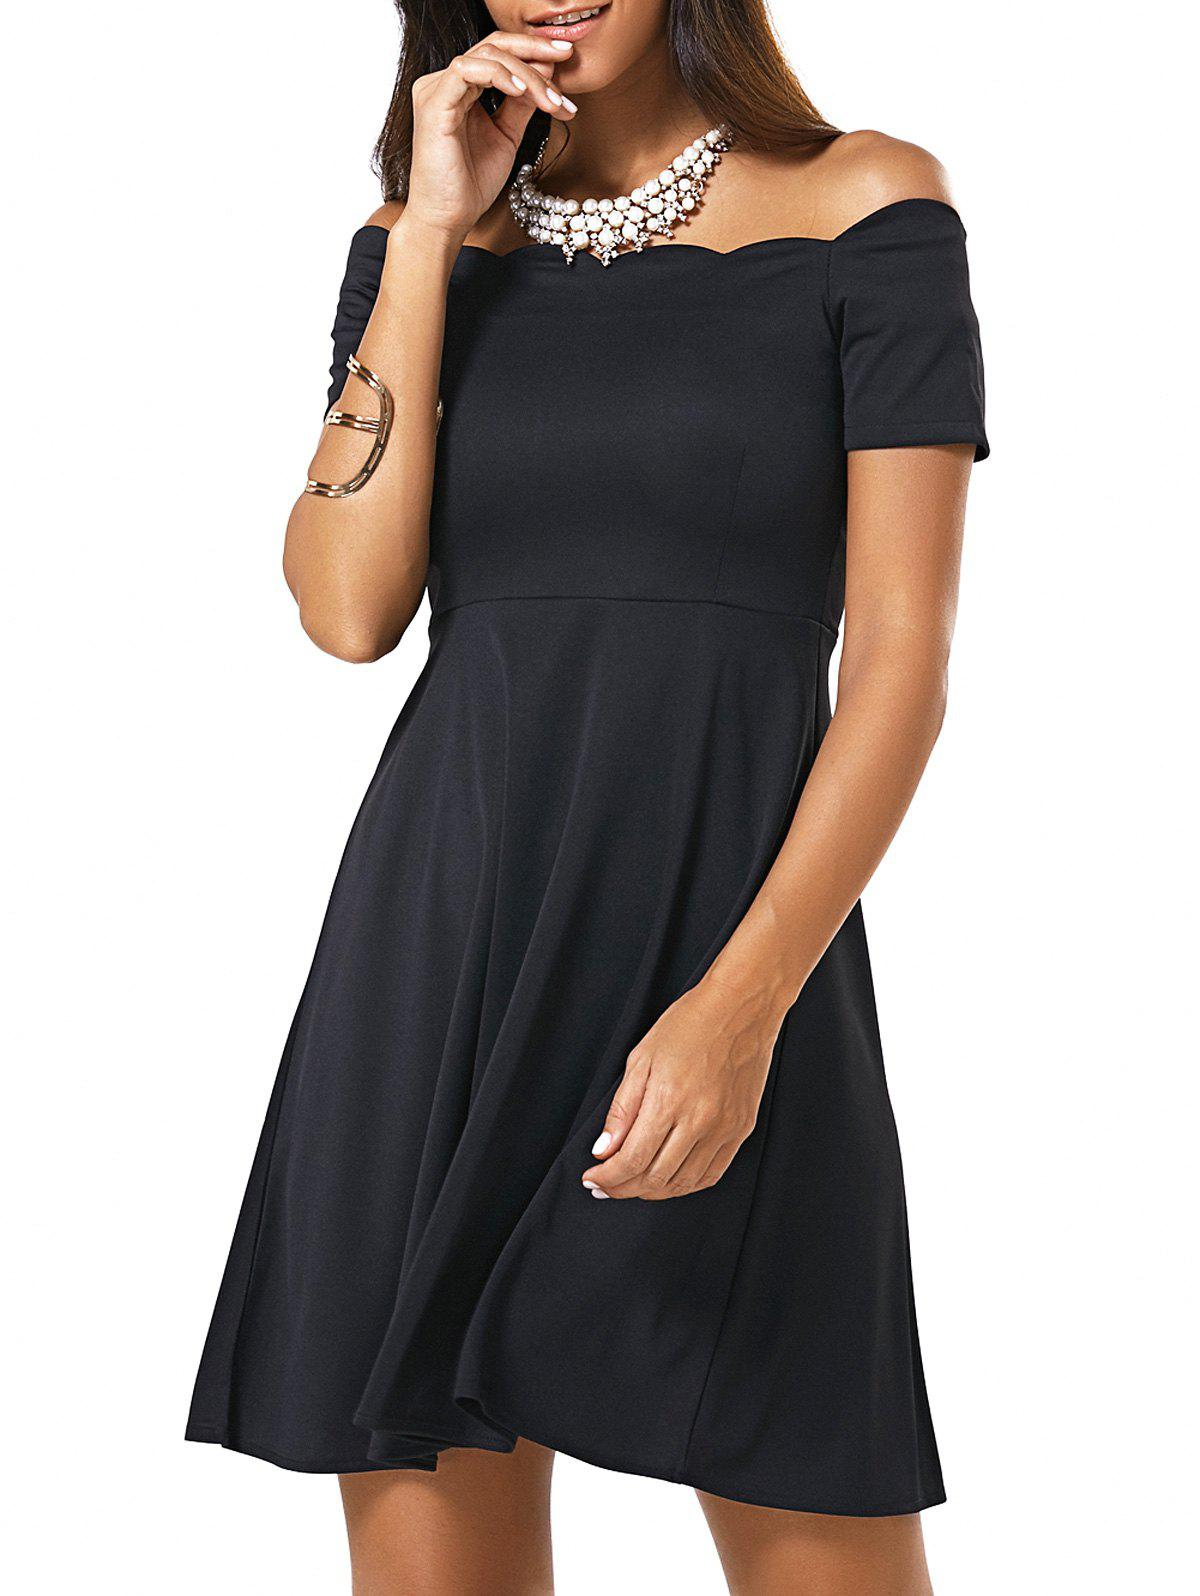 Stylish Women's Off The Shoulder Scalloped A-Line Dress - BLACK L